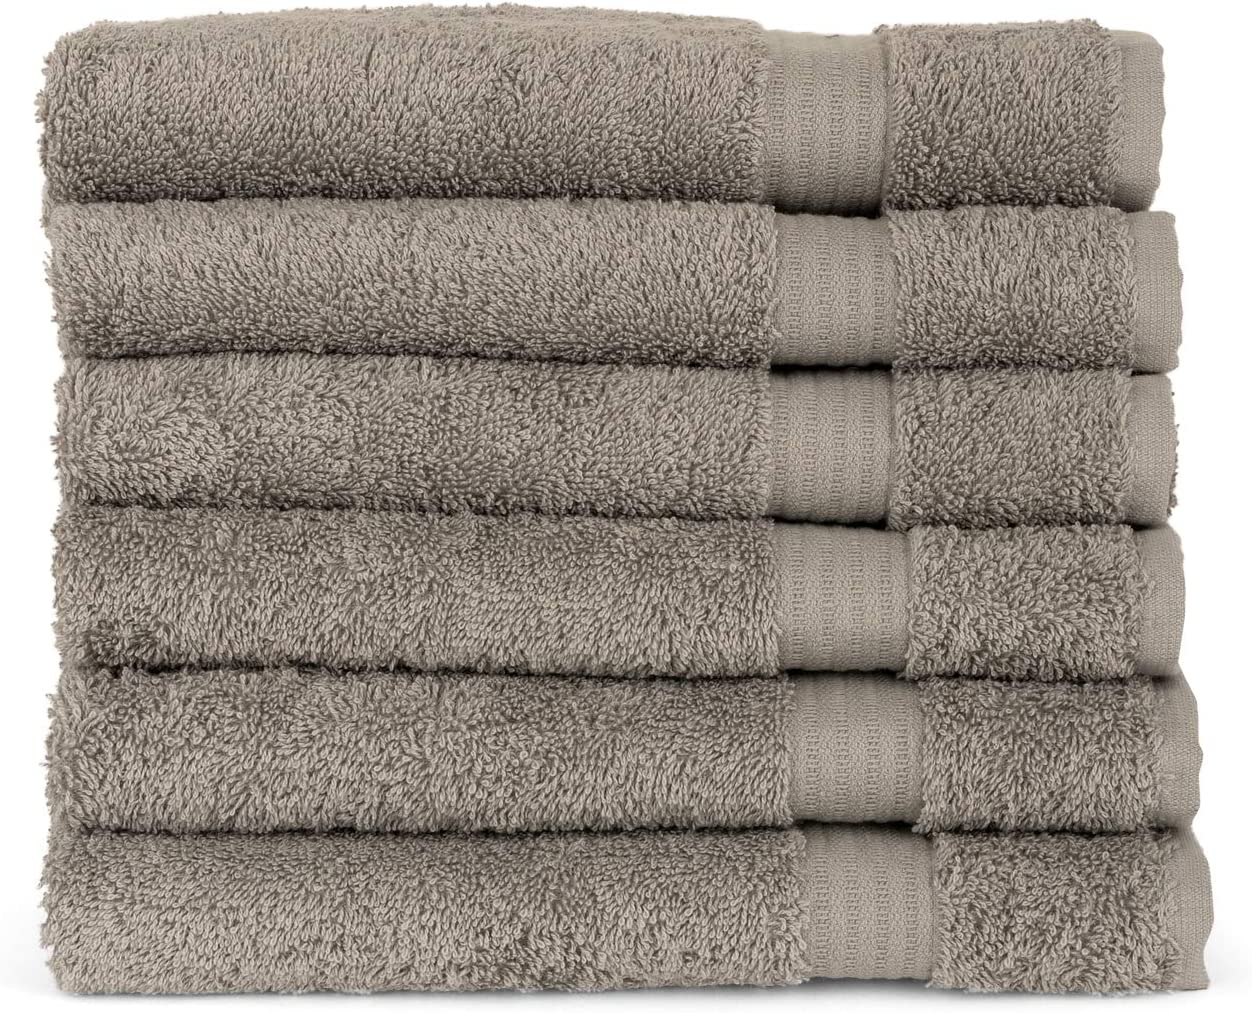 TowelSelections Sunshine Collection Soft Towels 100% Turkish Cotton 6 Hand Towels Paloma Gray